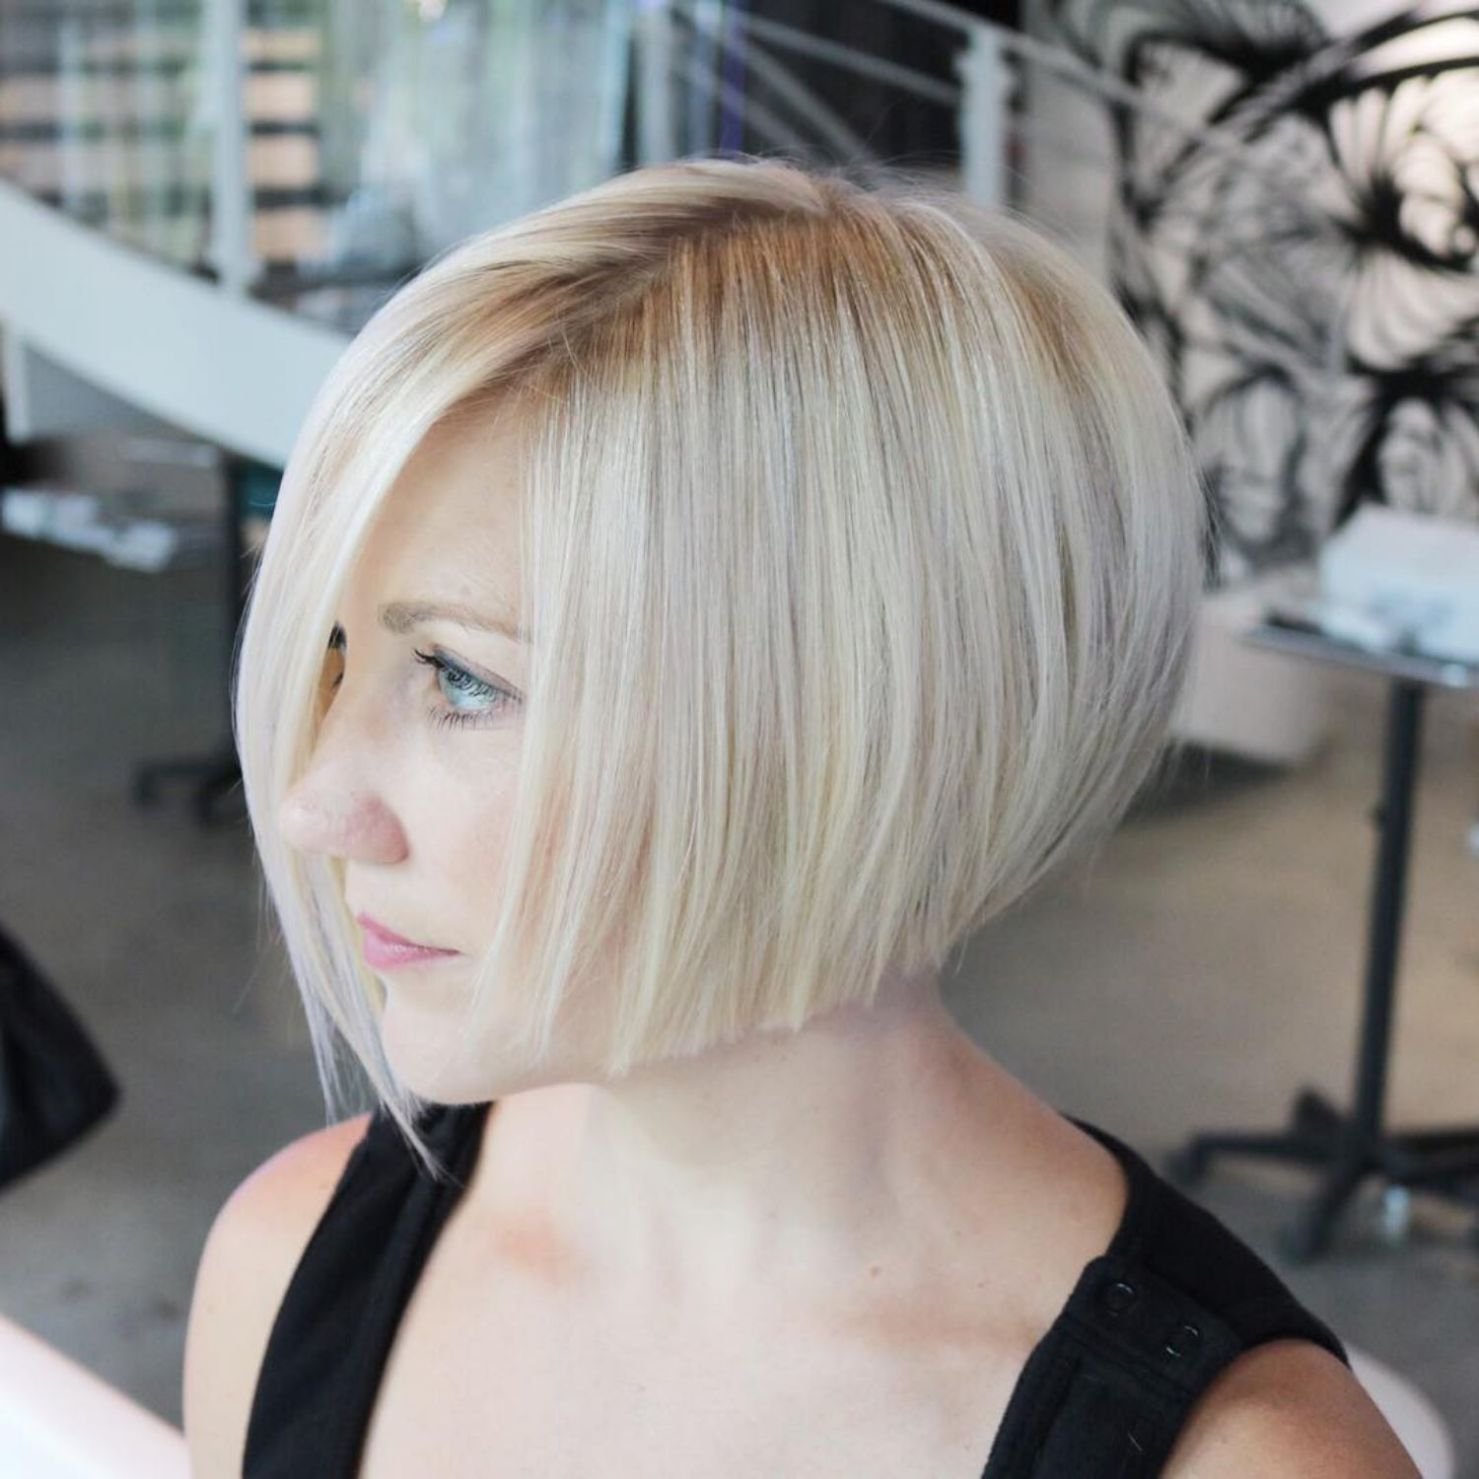 Winning Looks with Bob Haircuts for Fine Hair in Beauty